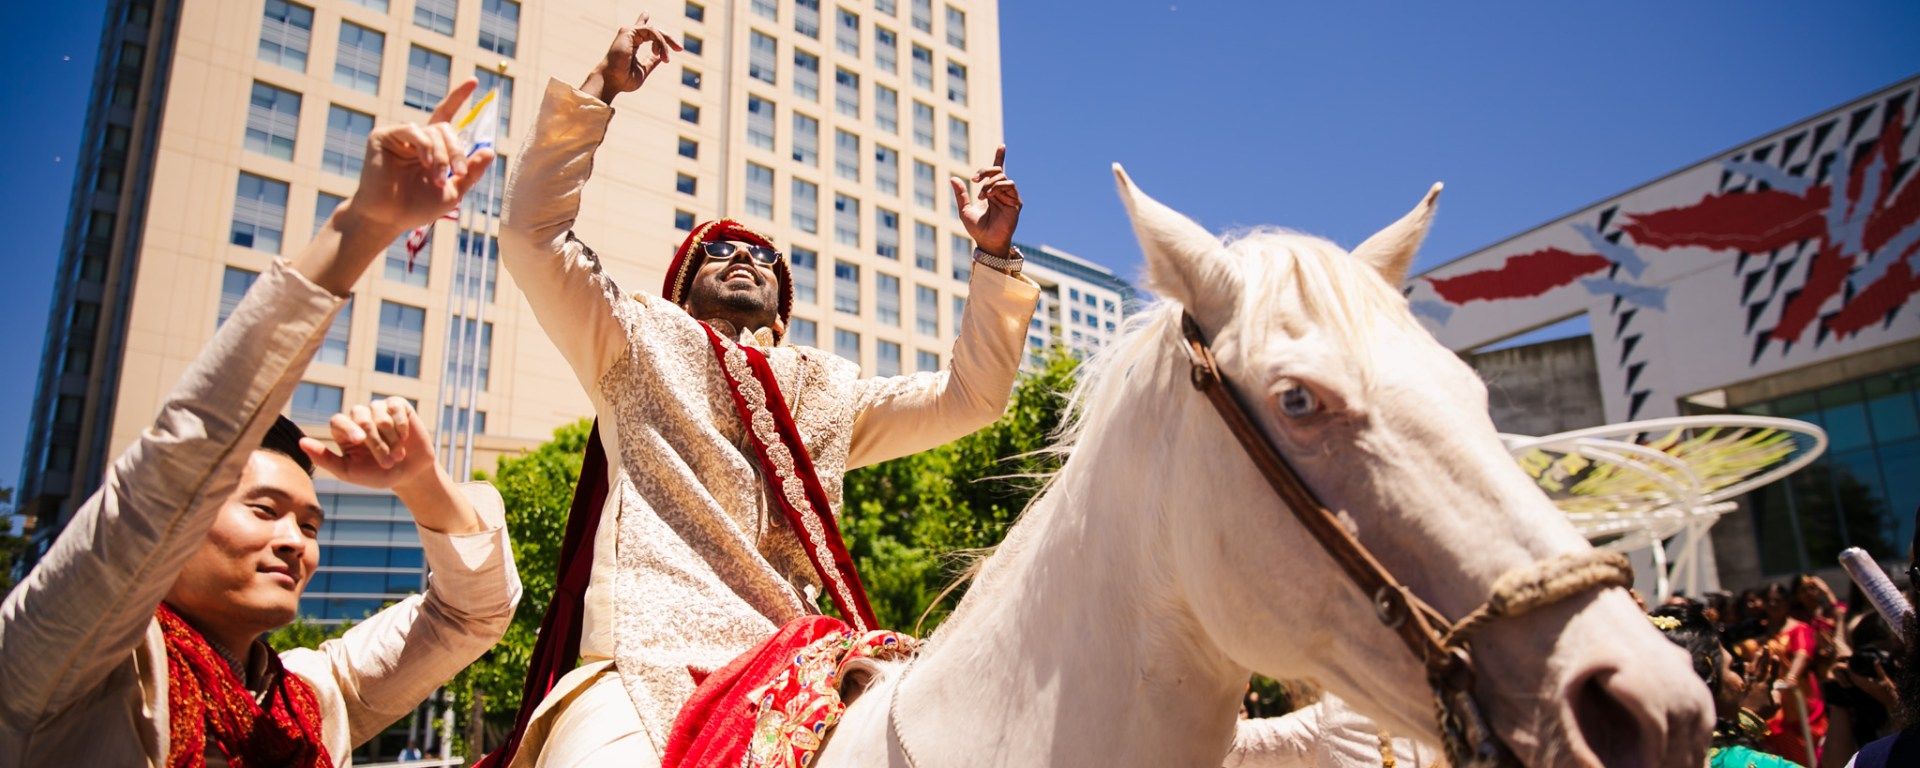 Indian wedding baraat at the the San Jose Marriott